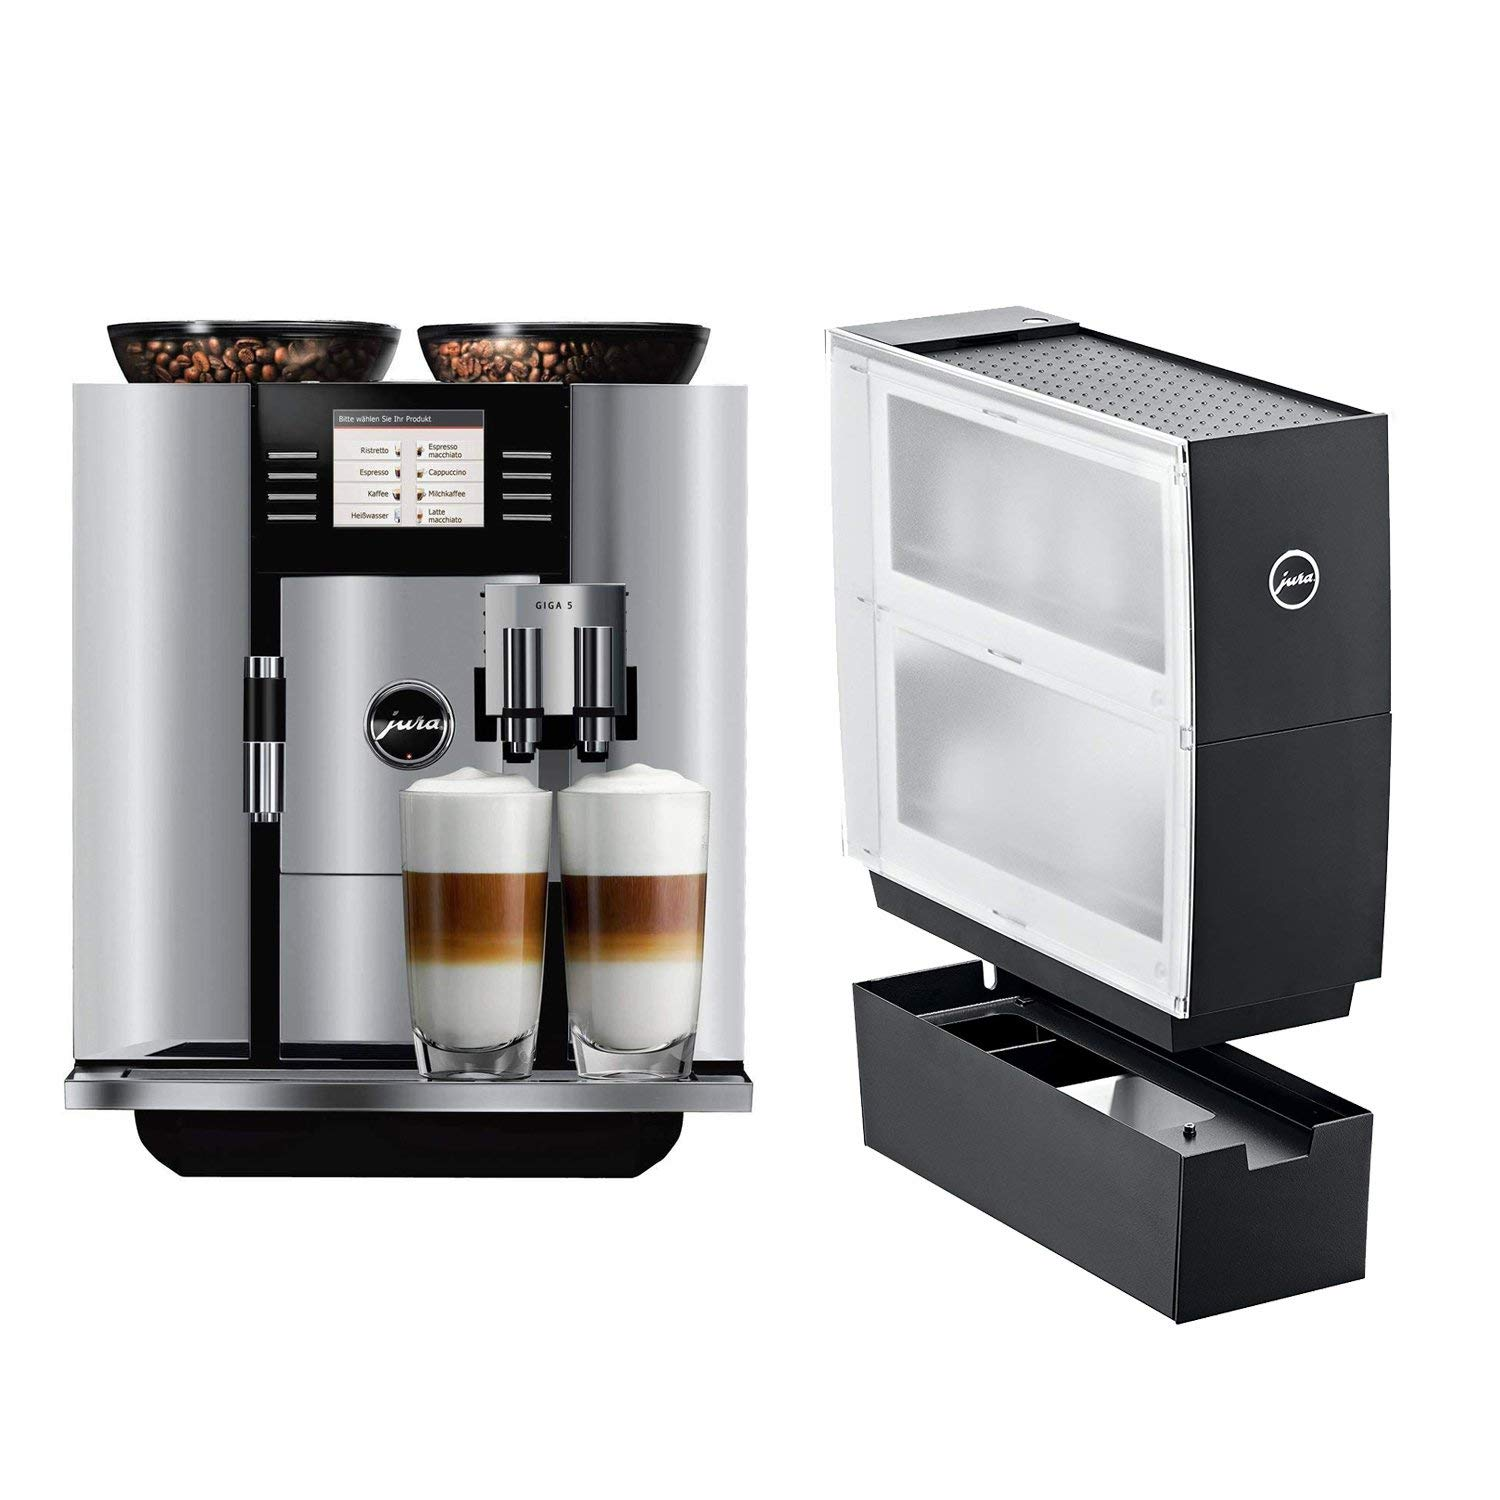 Jura 13623 Giga 5 Automatic Coffee Machine, Aluminum with Jura Black Cup Warmer Accessory Drawer